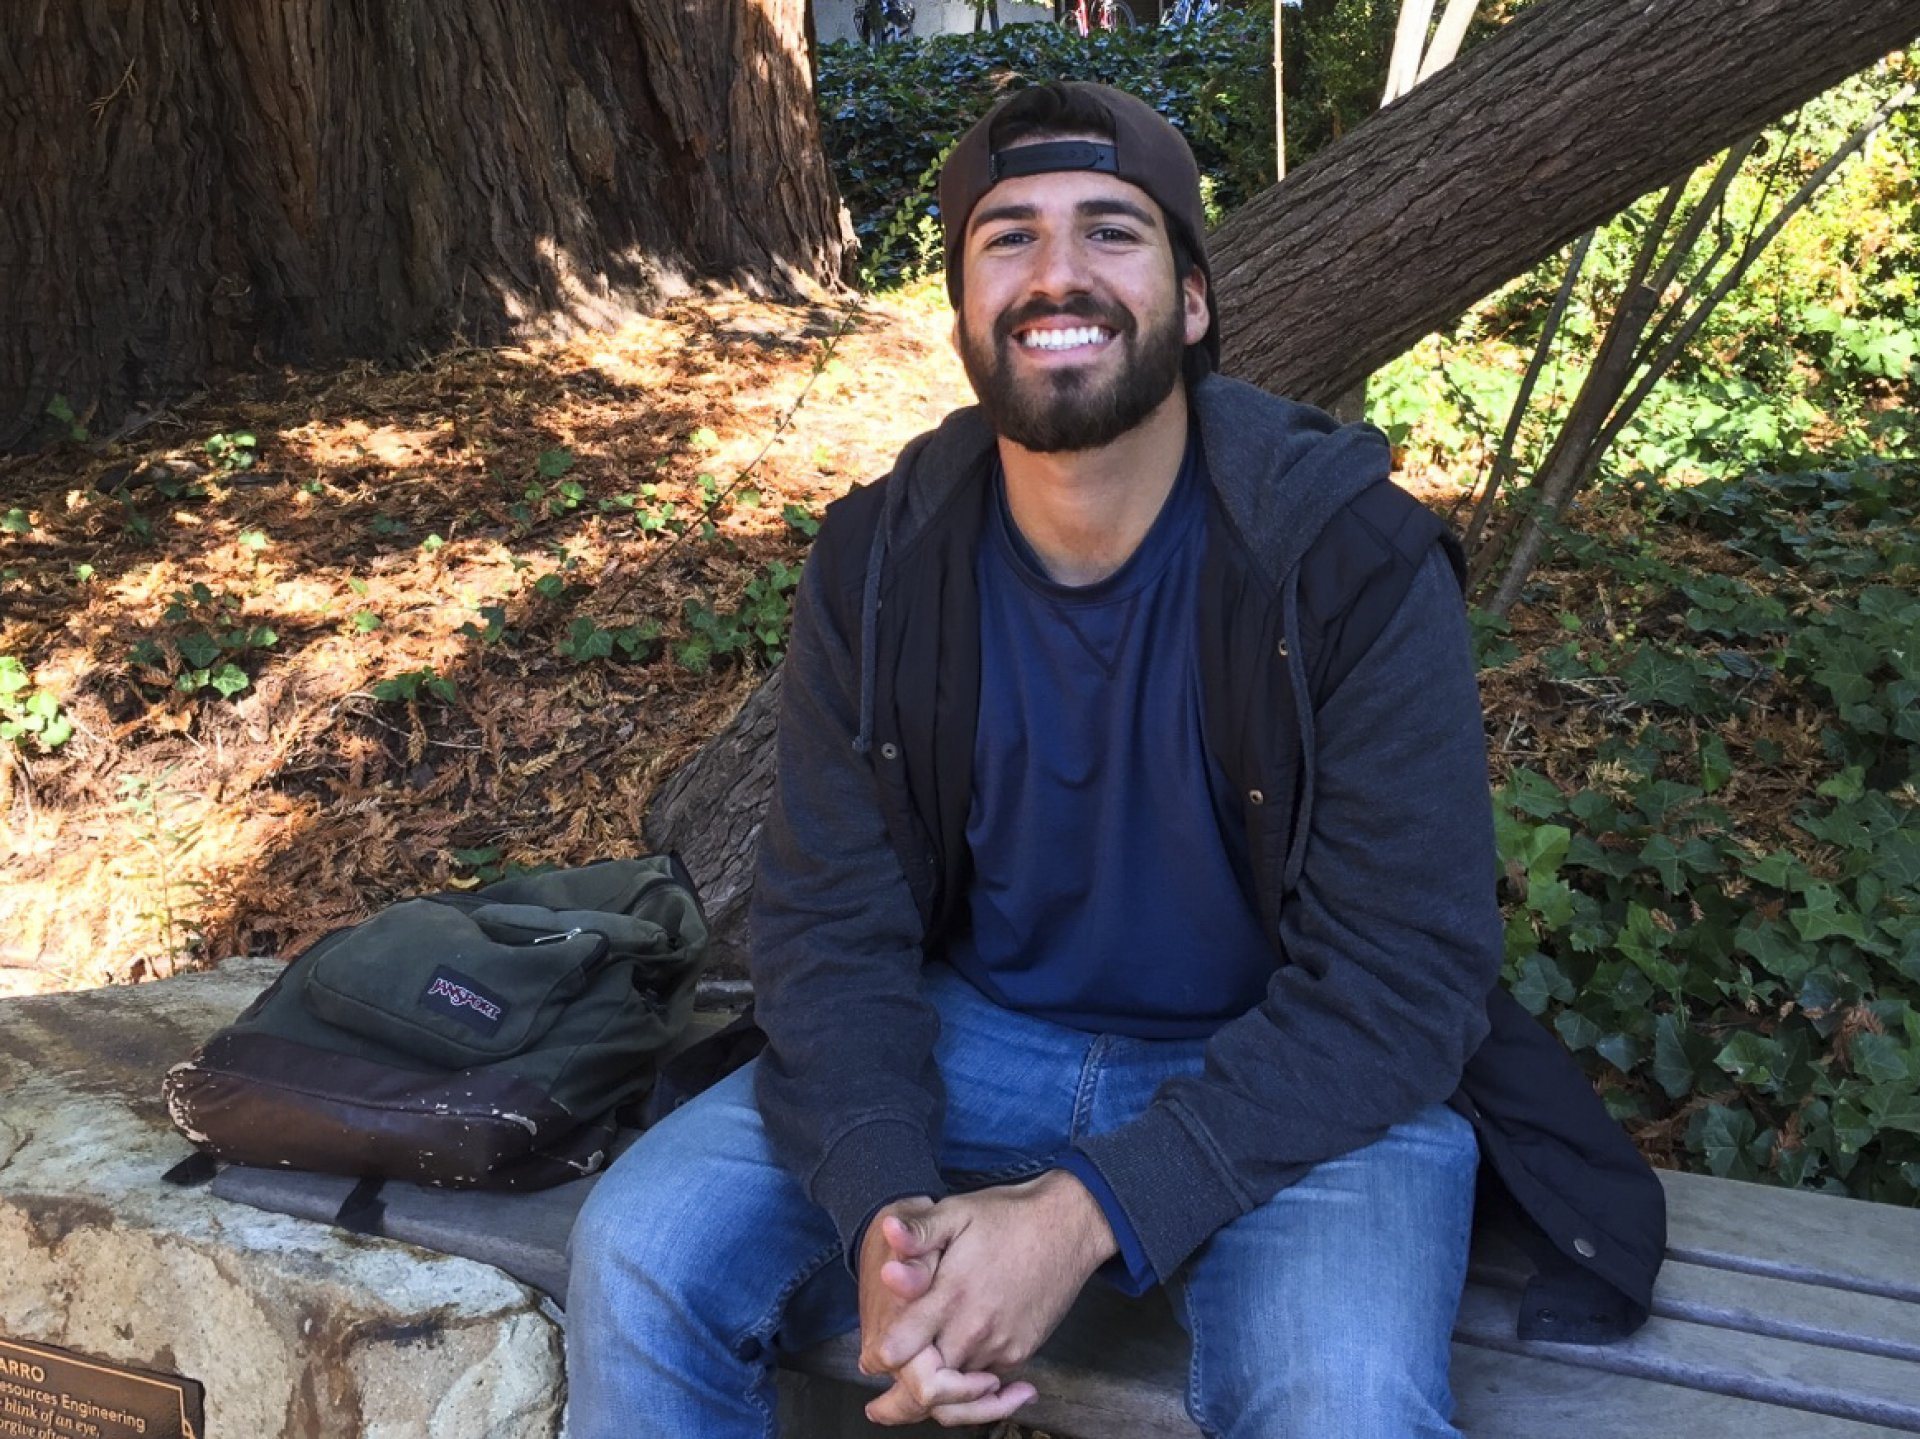 Alex Jamal, a wildlife major, plans to join the Peace Corps after graduating. Photo credit: Kyra Skylark